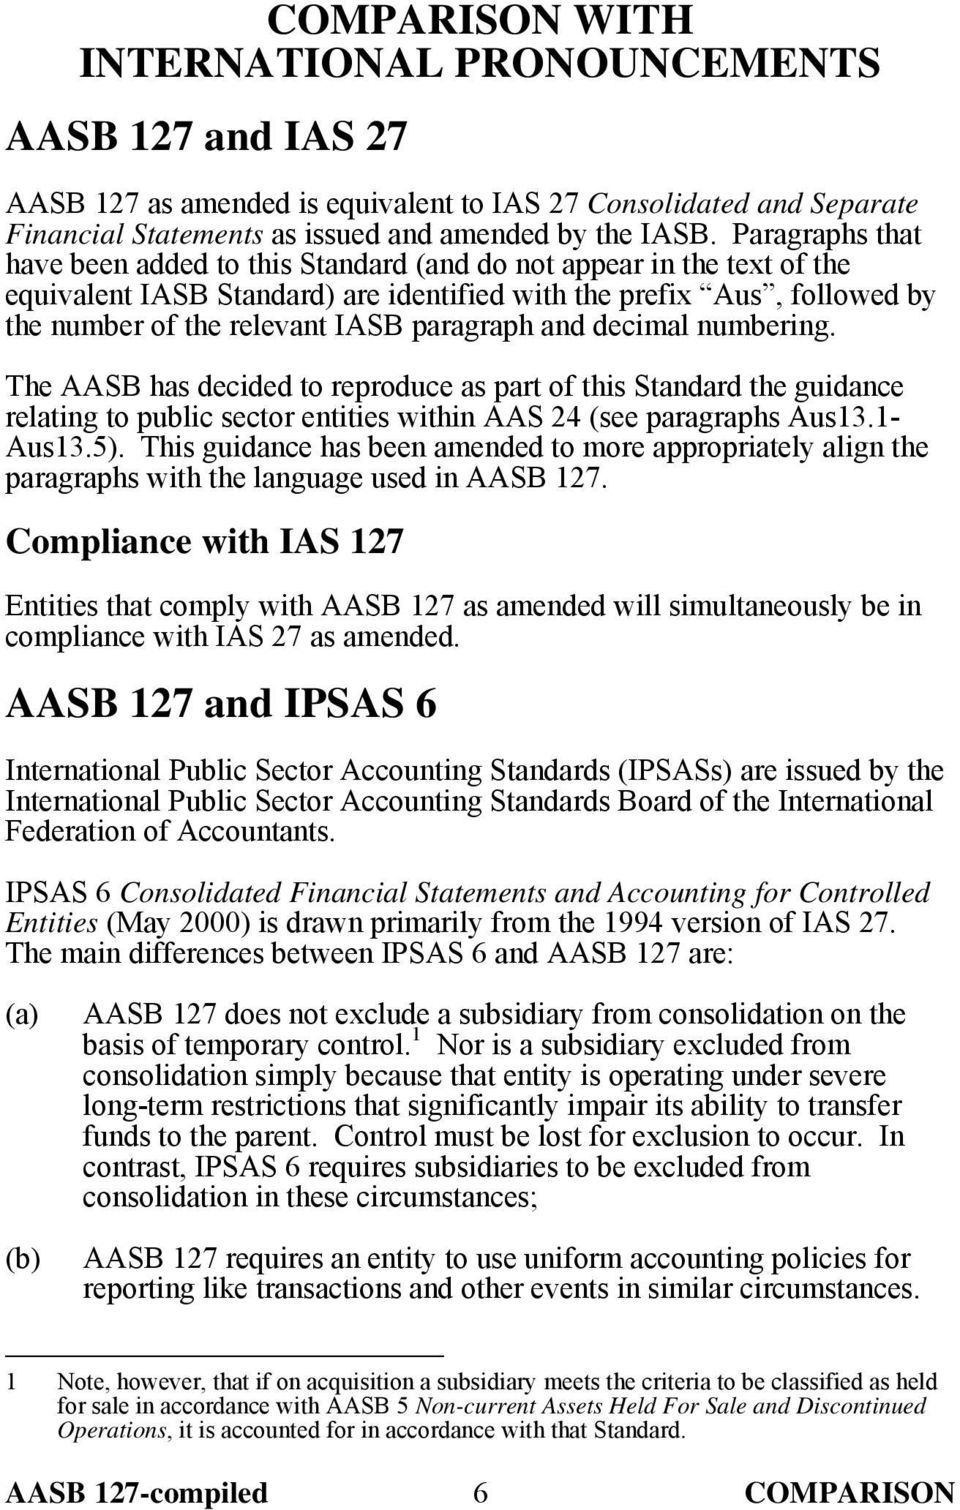 paragraph and decimal numbering. The AASB has decided to reproduce as part of this Standard the guidance relating to public sector entities within AAS 24 (see paragraphs Aus13.1- Aus13.5).